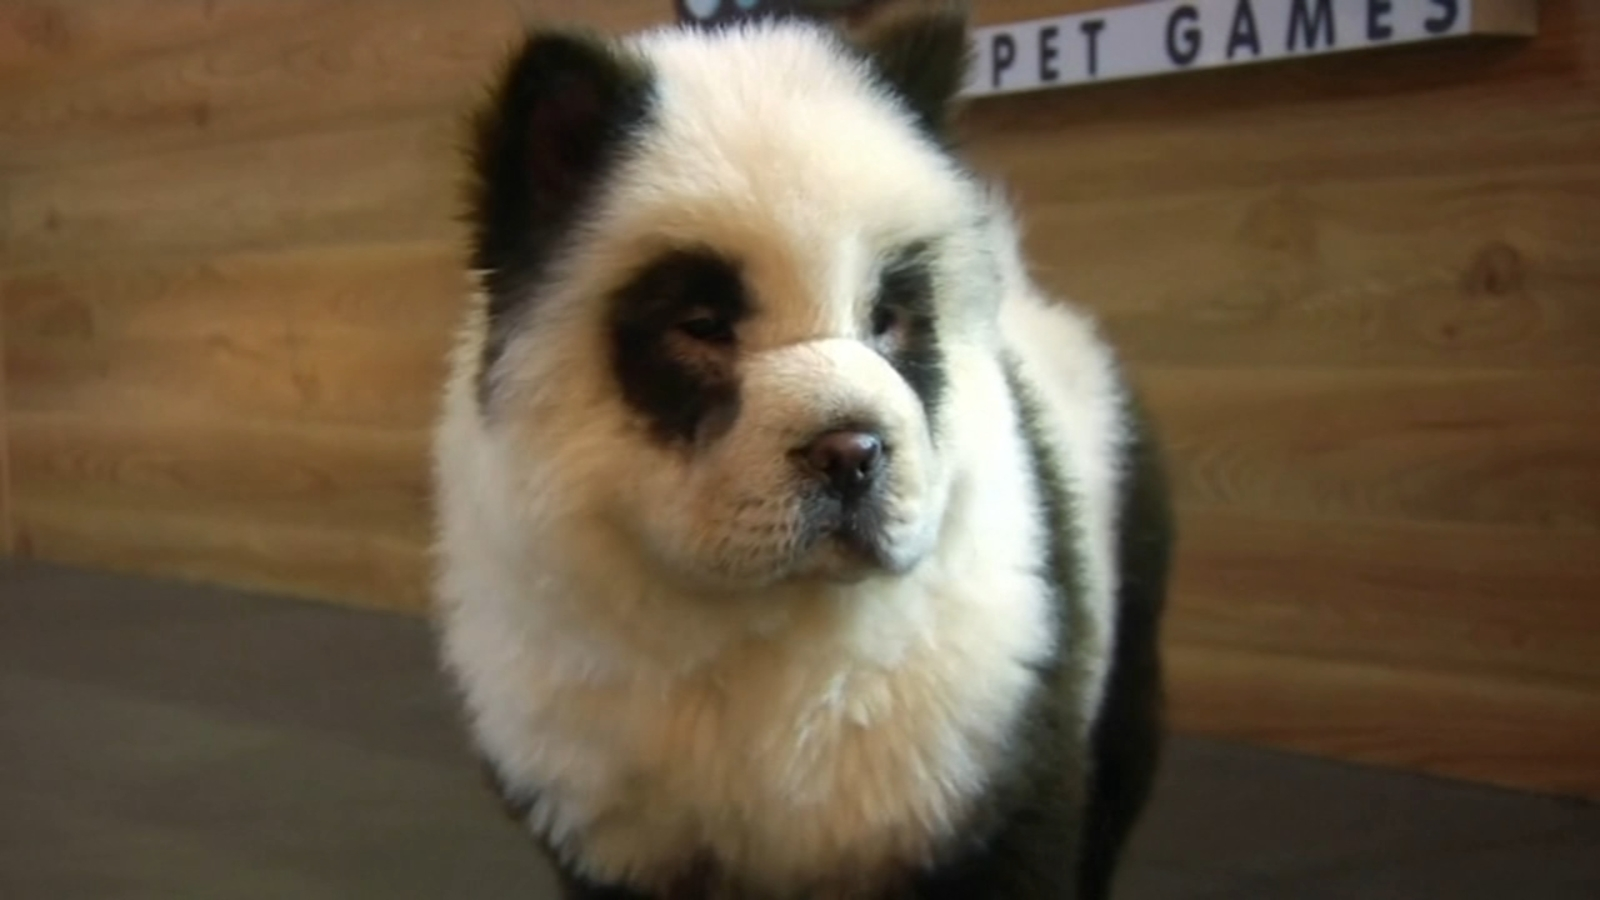 Chinese cafe paints dogs to look like giant pandas - ABC7 Chicago